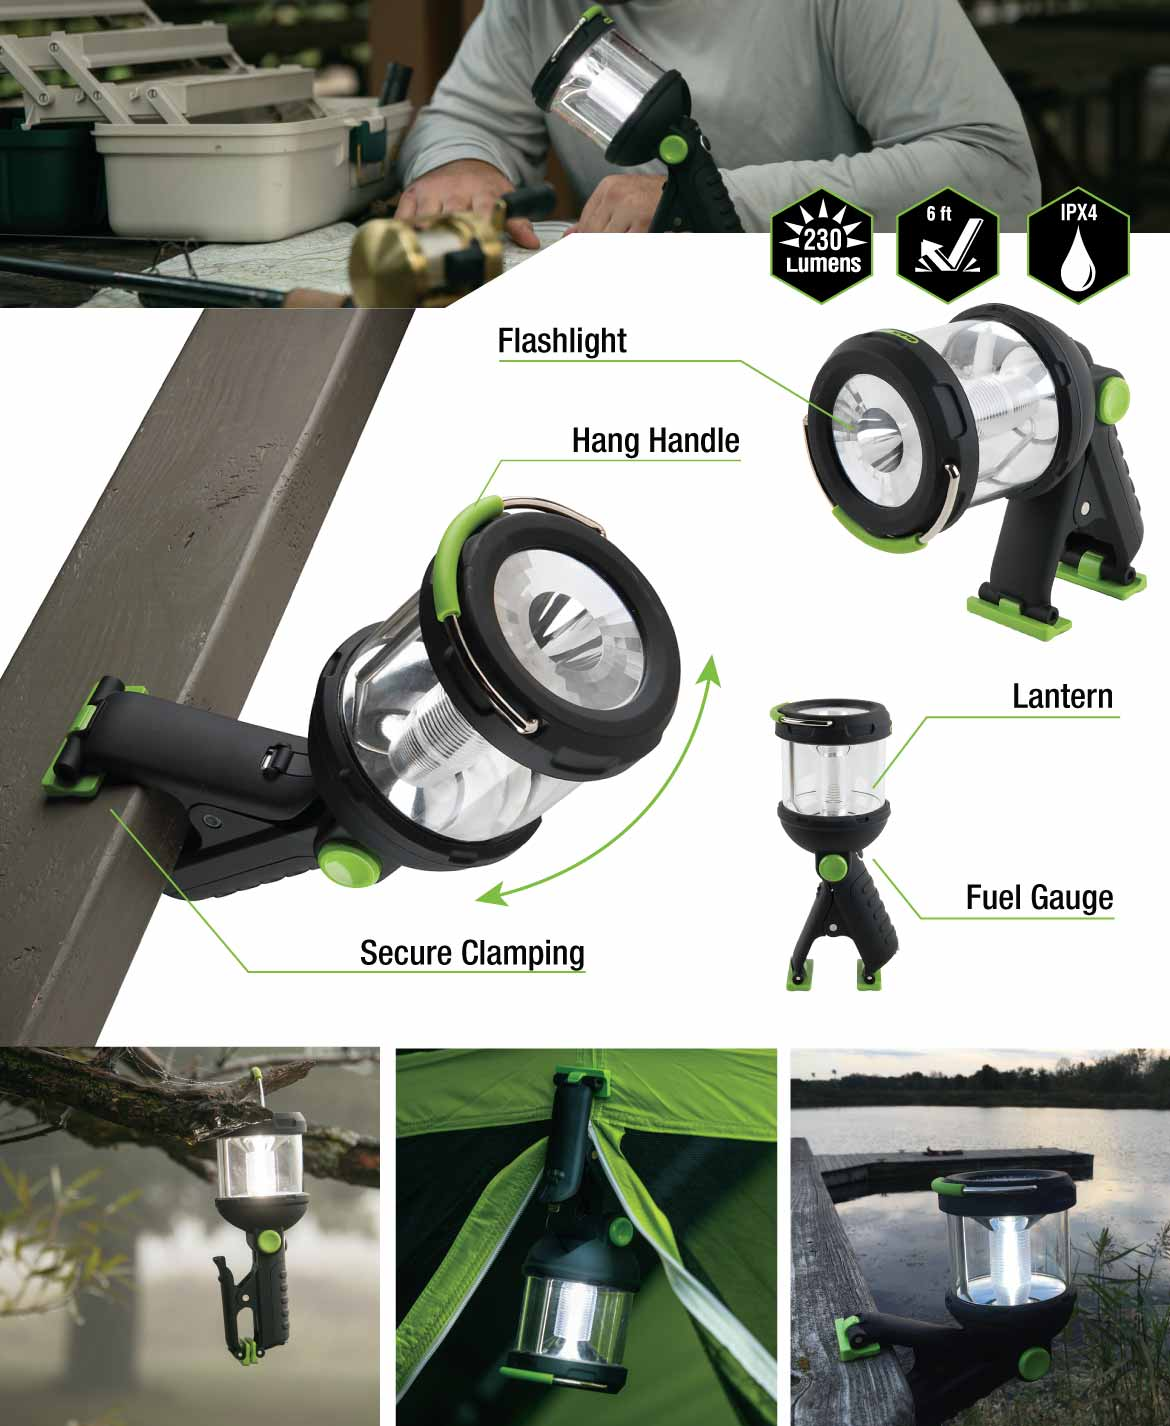 Extra features of the Blackfire Lantern LED Clamplight